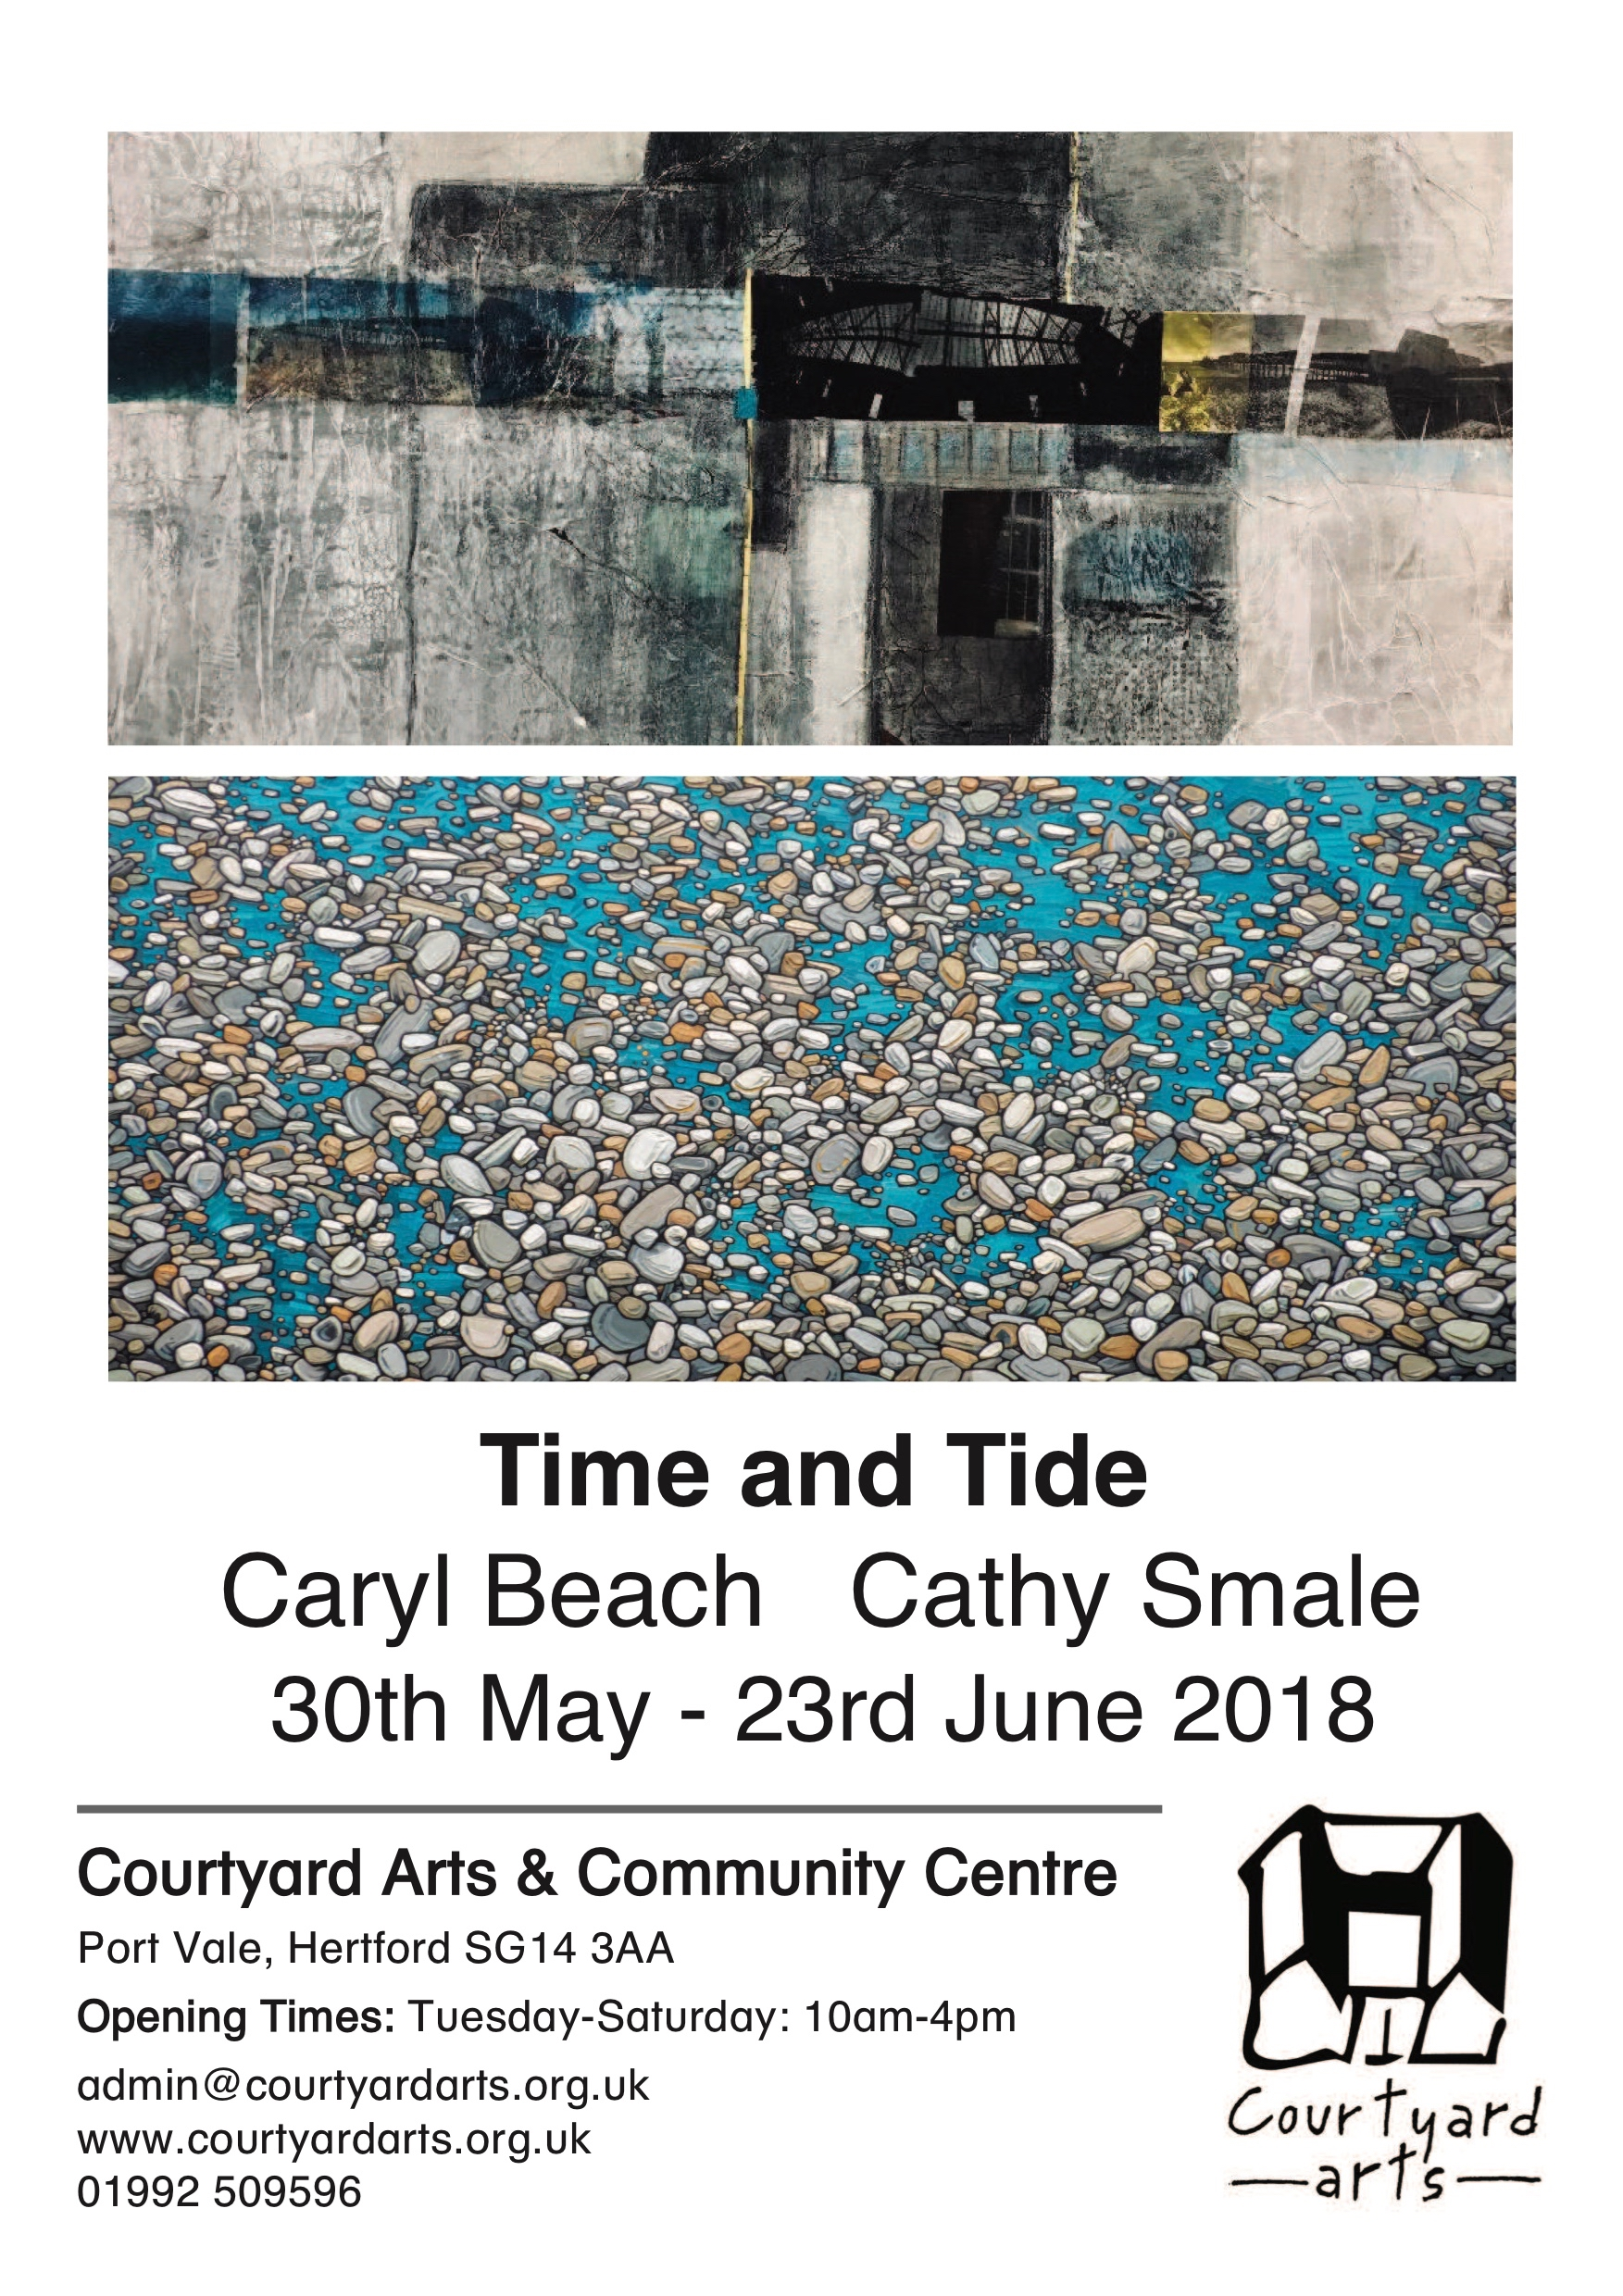 Time and Tide – Exhibition with Caryl Beach and Cathy Smale- Save the date.